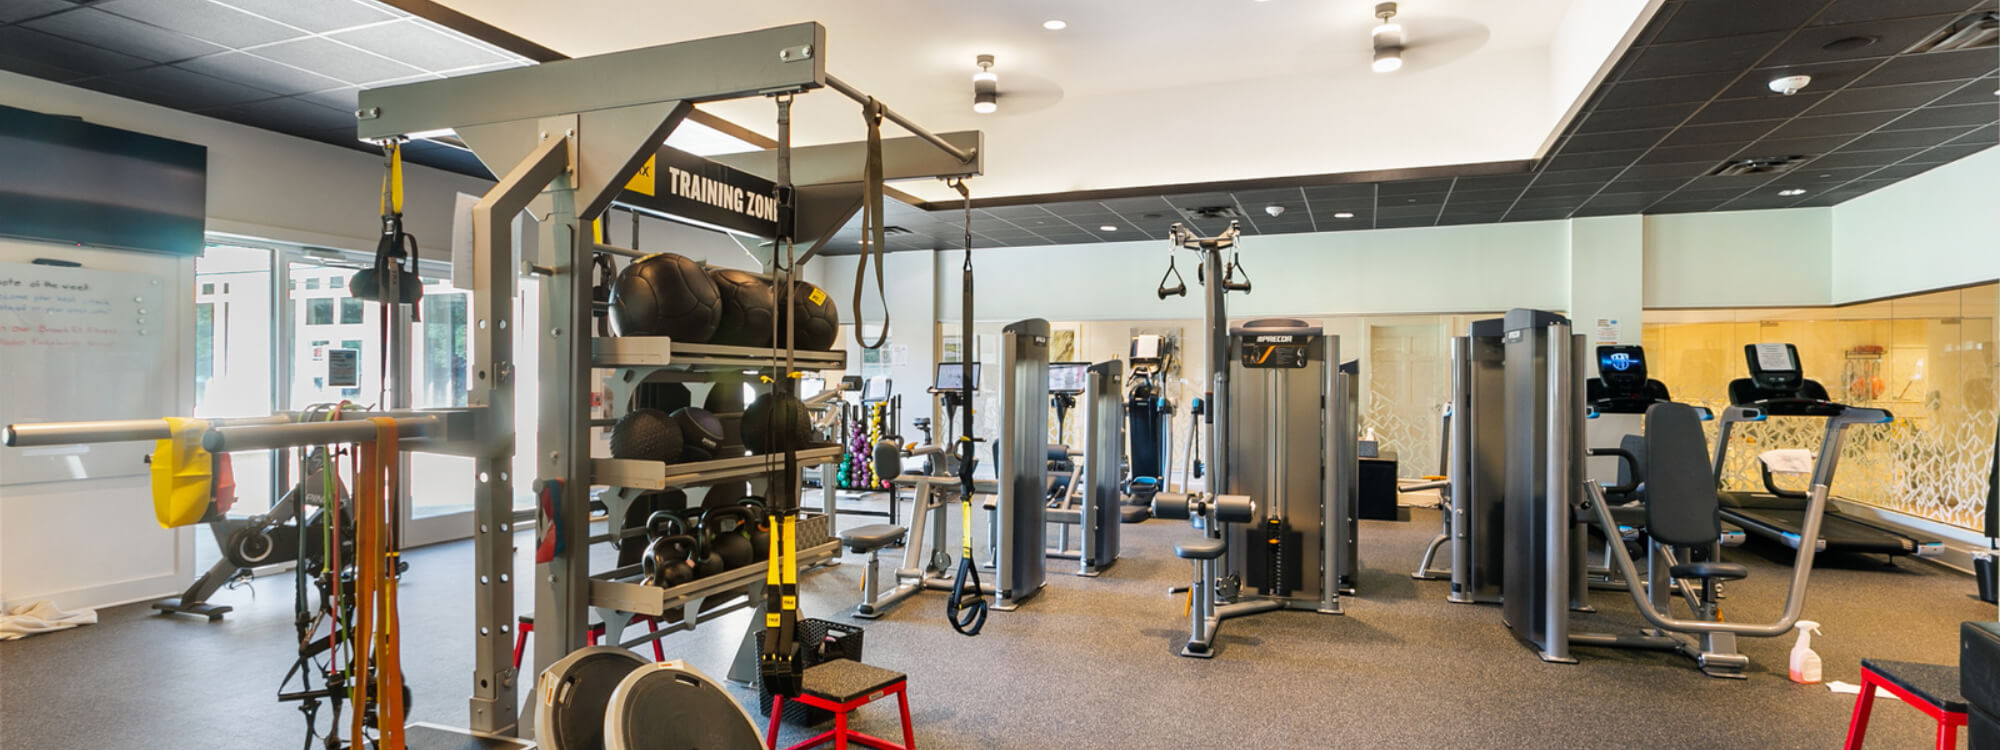 Strength and Cardio Fitness Room